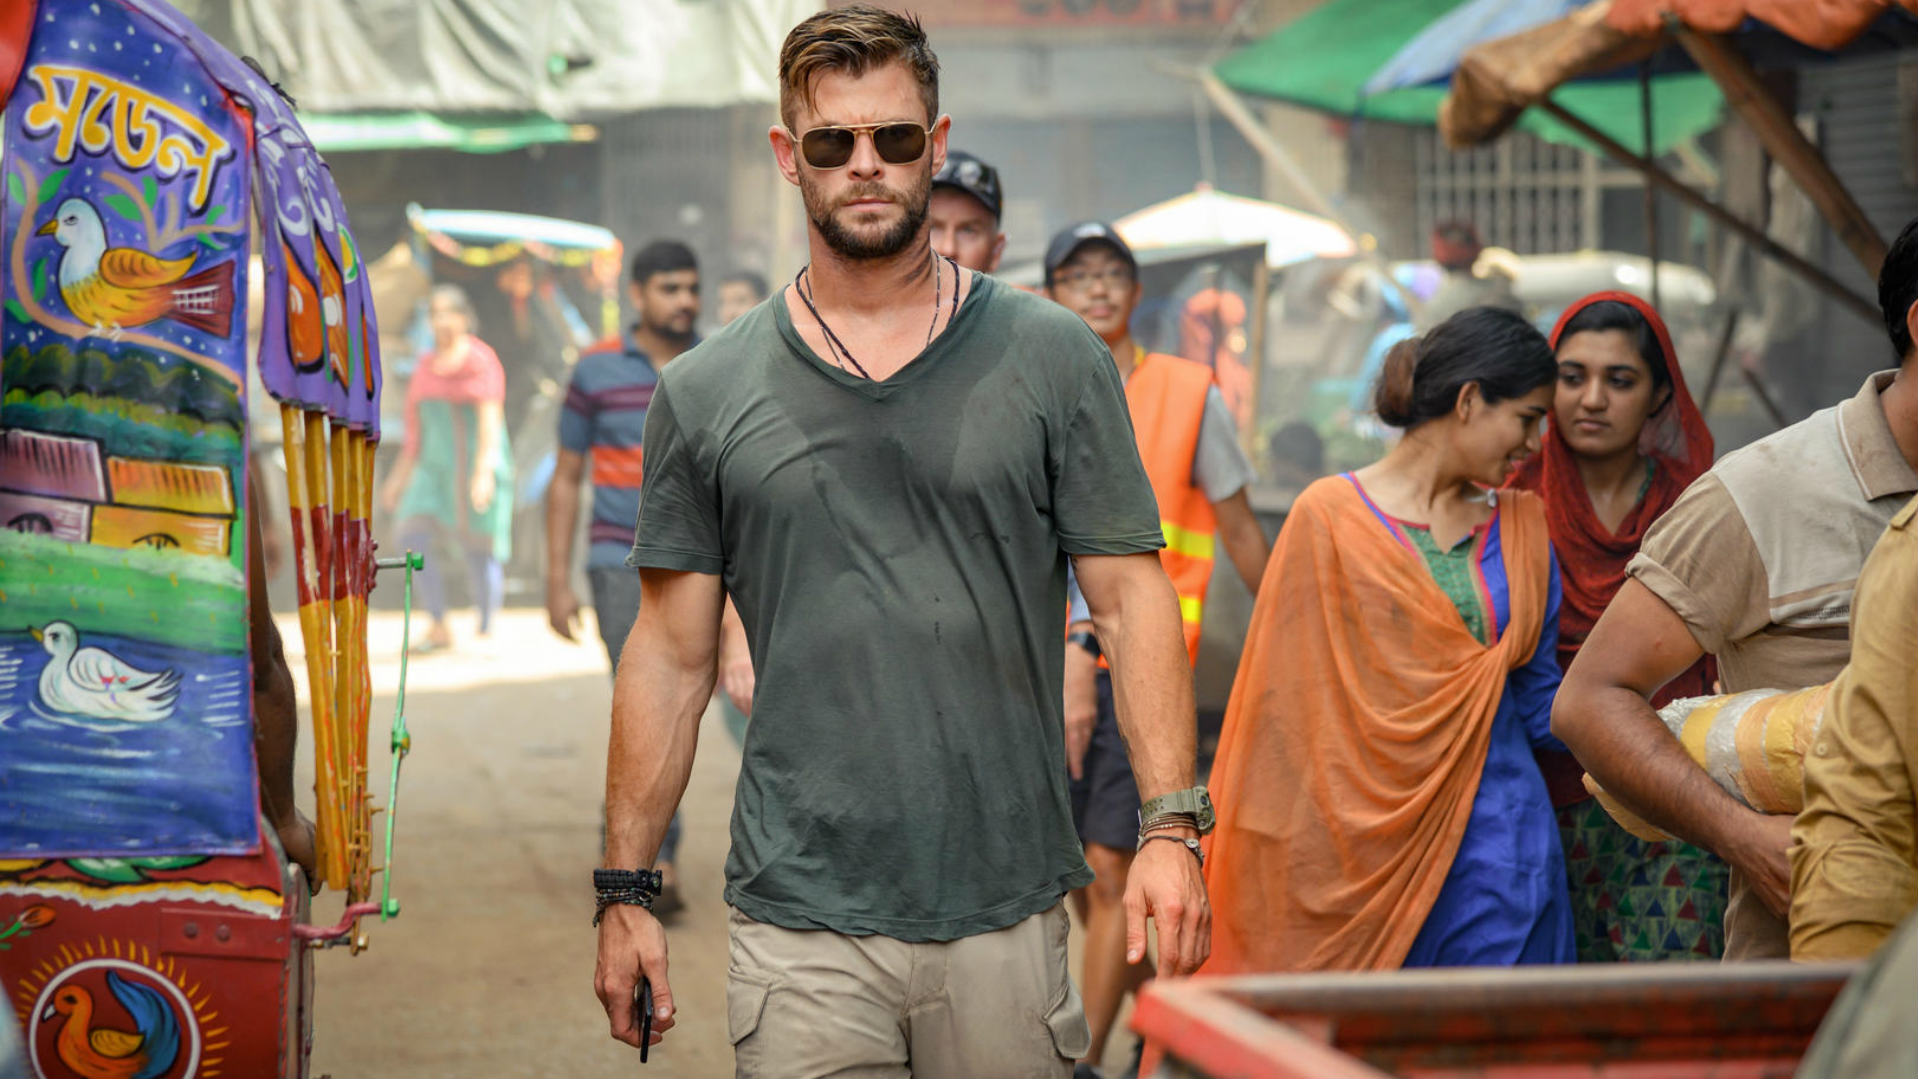 Extraction Trailer: Watch Chris Hemsworth go 'Man on Fire'